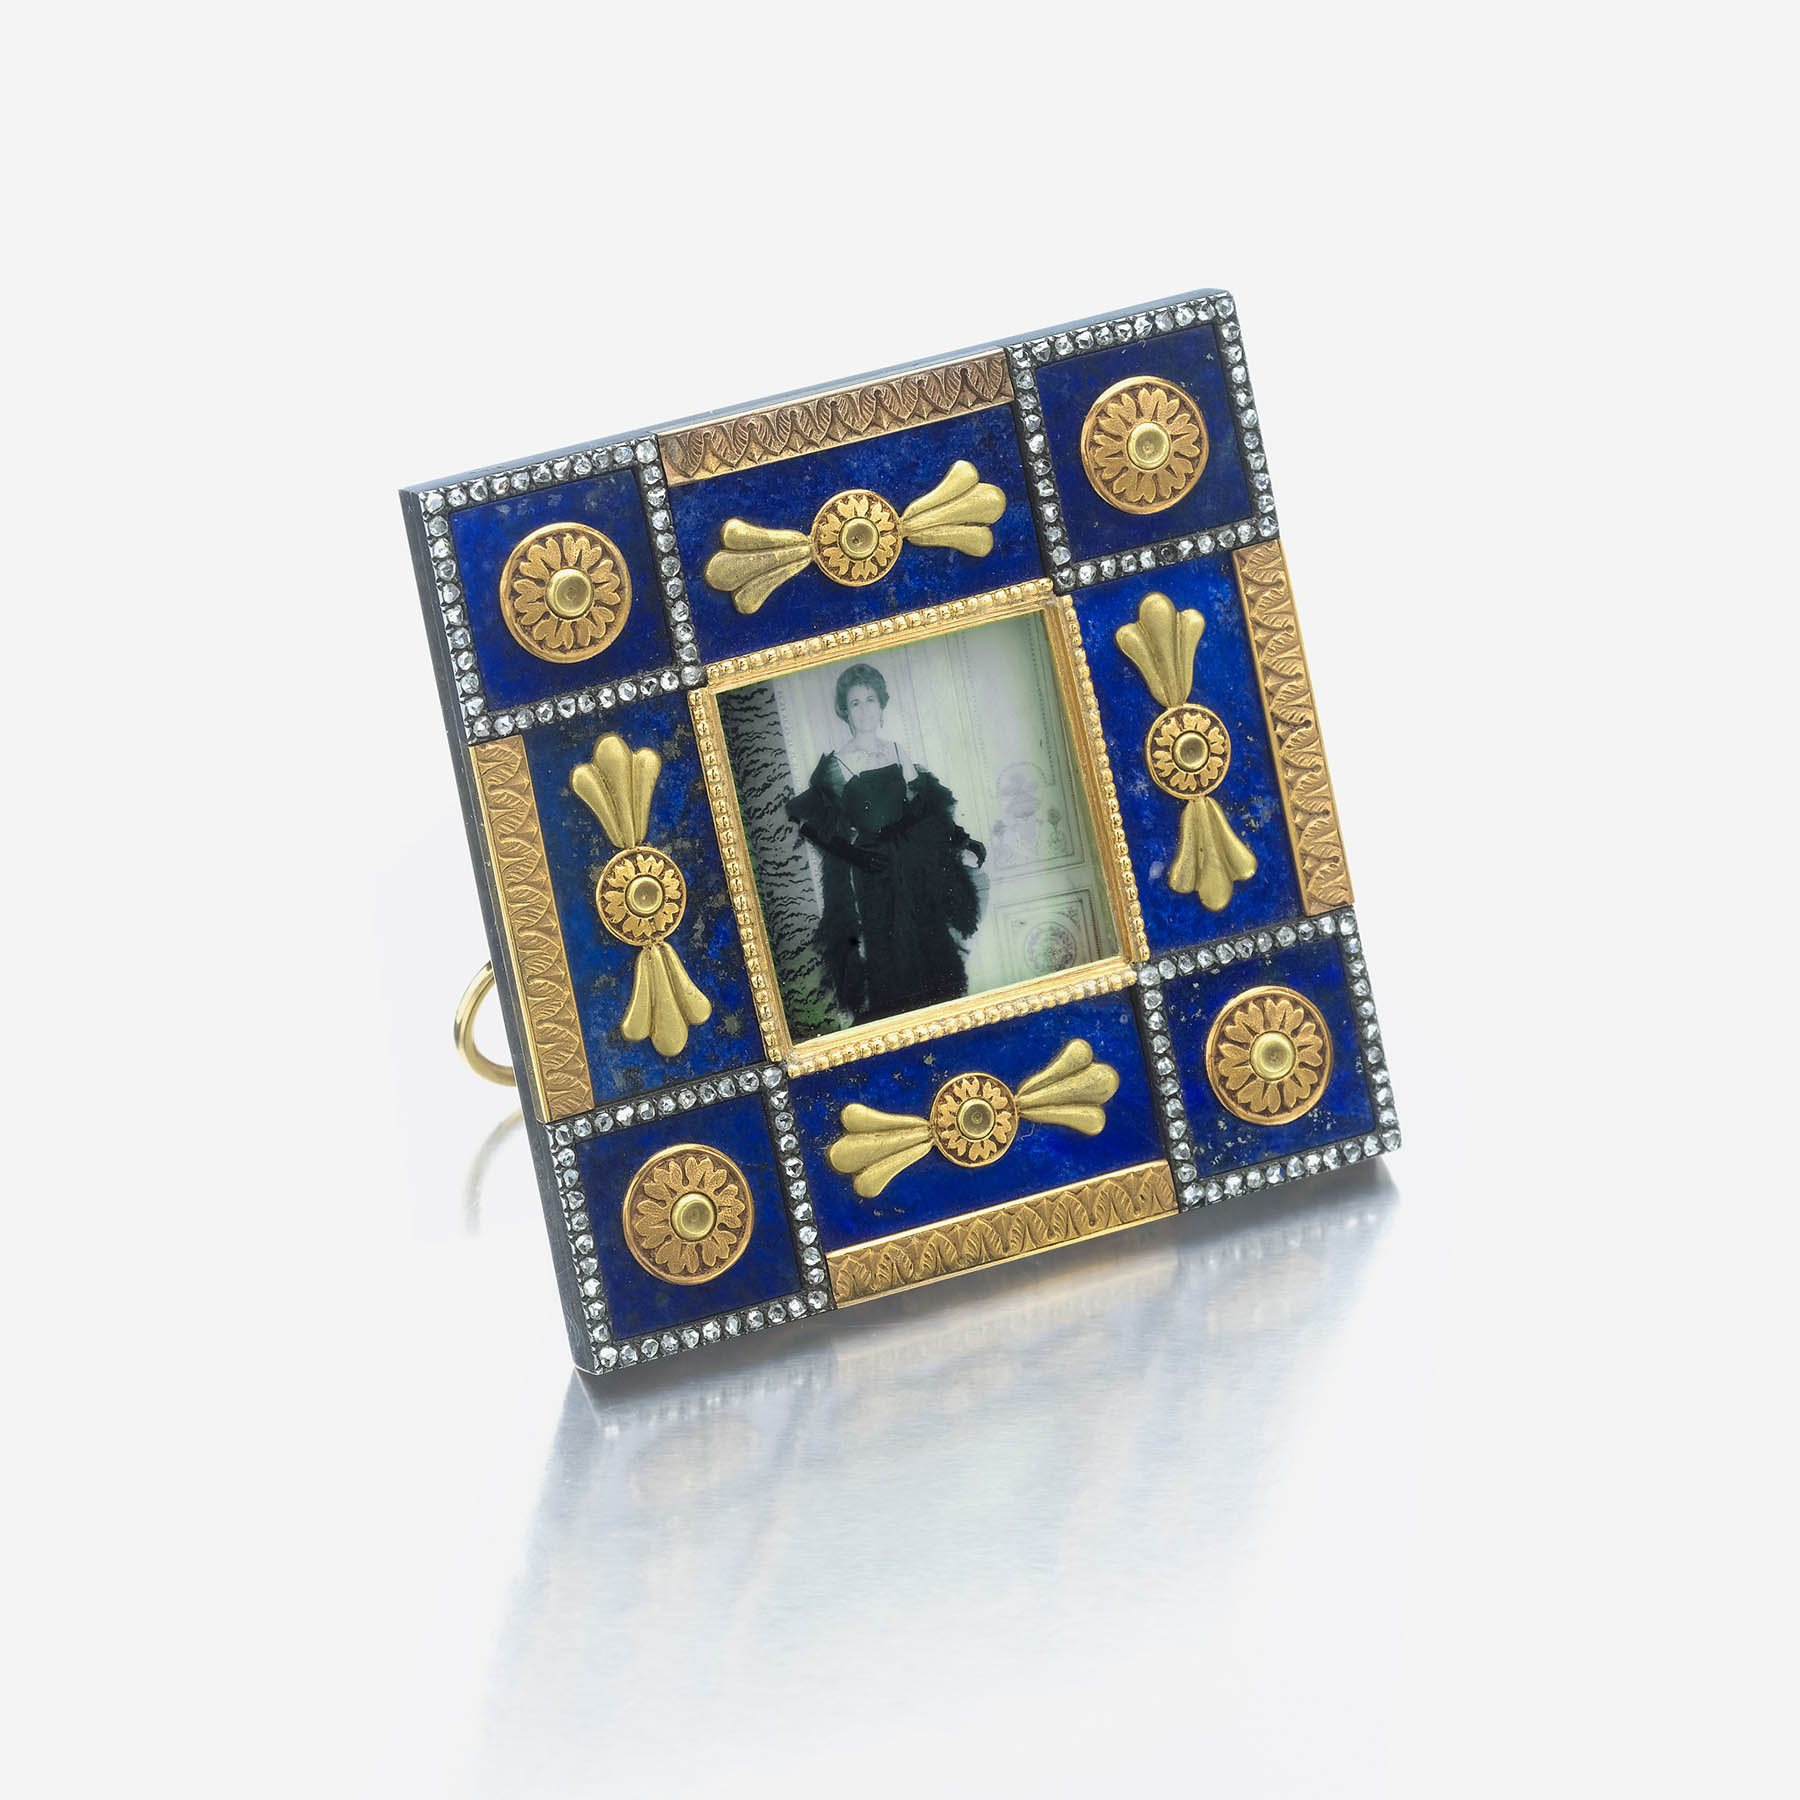 A bicolored gold-mounted lapis lazuli and diamond miniature picture frame, Fabergé